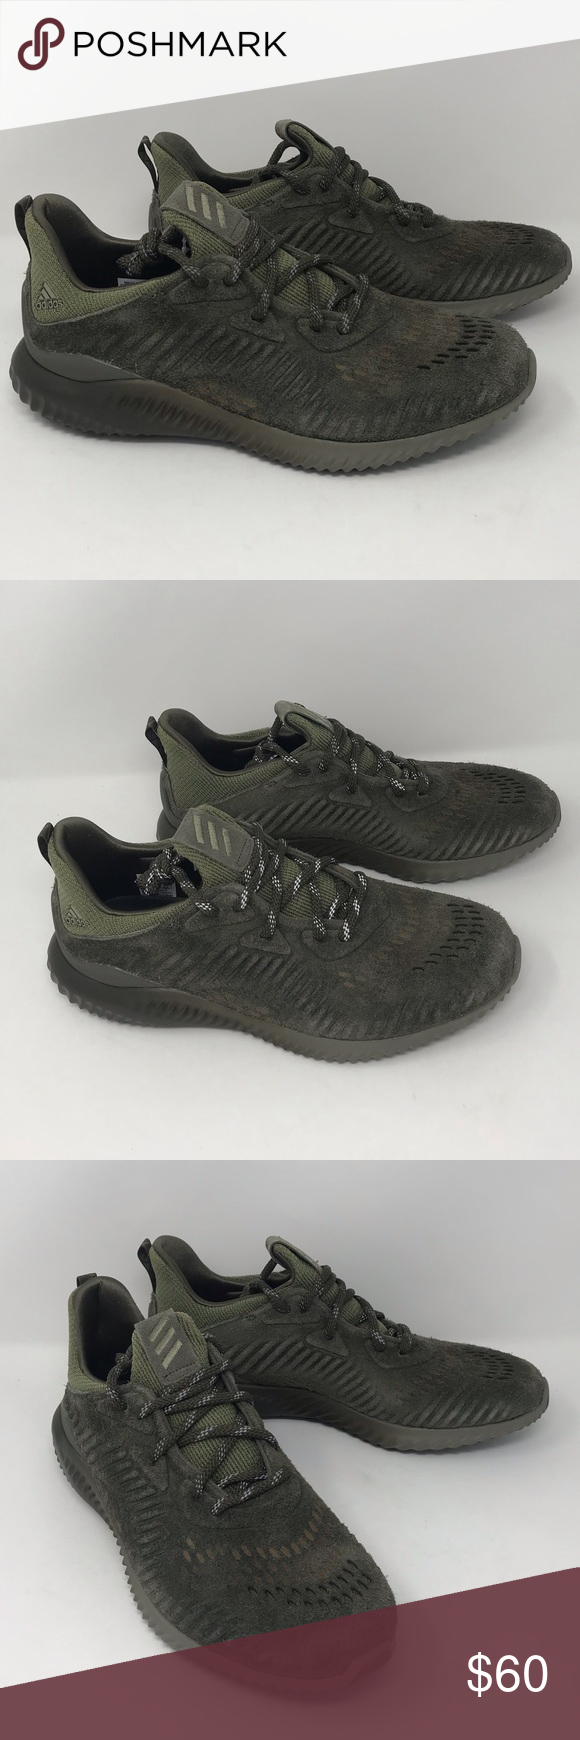 9df93e333243f Adidas Alphabounce LEA Running Shoes - Men Adidas Alphabounce LEA Running  Shoes - Men s Color  Branch   Trace Cargo   Camo Green Material  Suede  upper ...